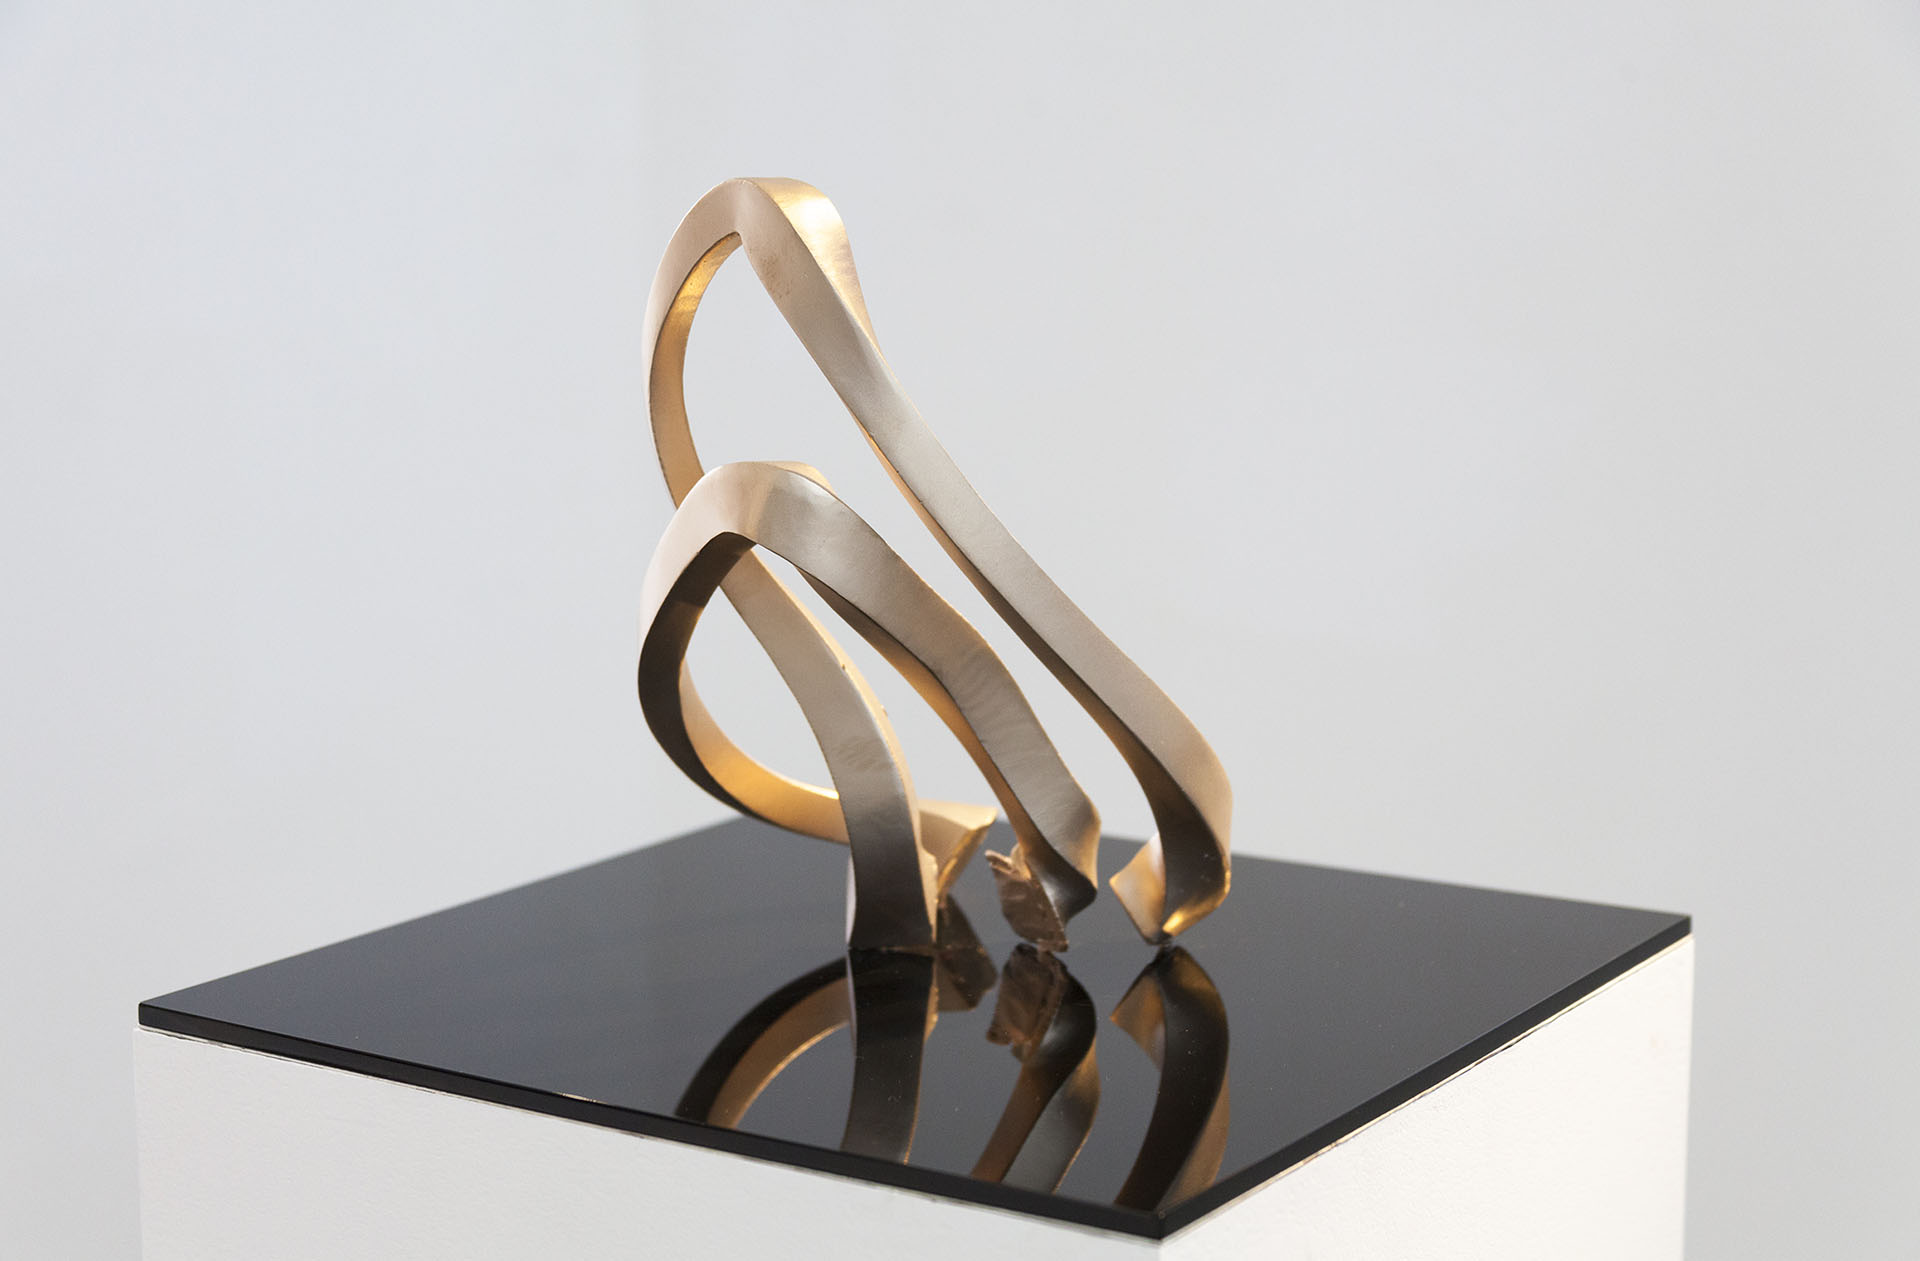 motion capture sculpture in bronze